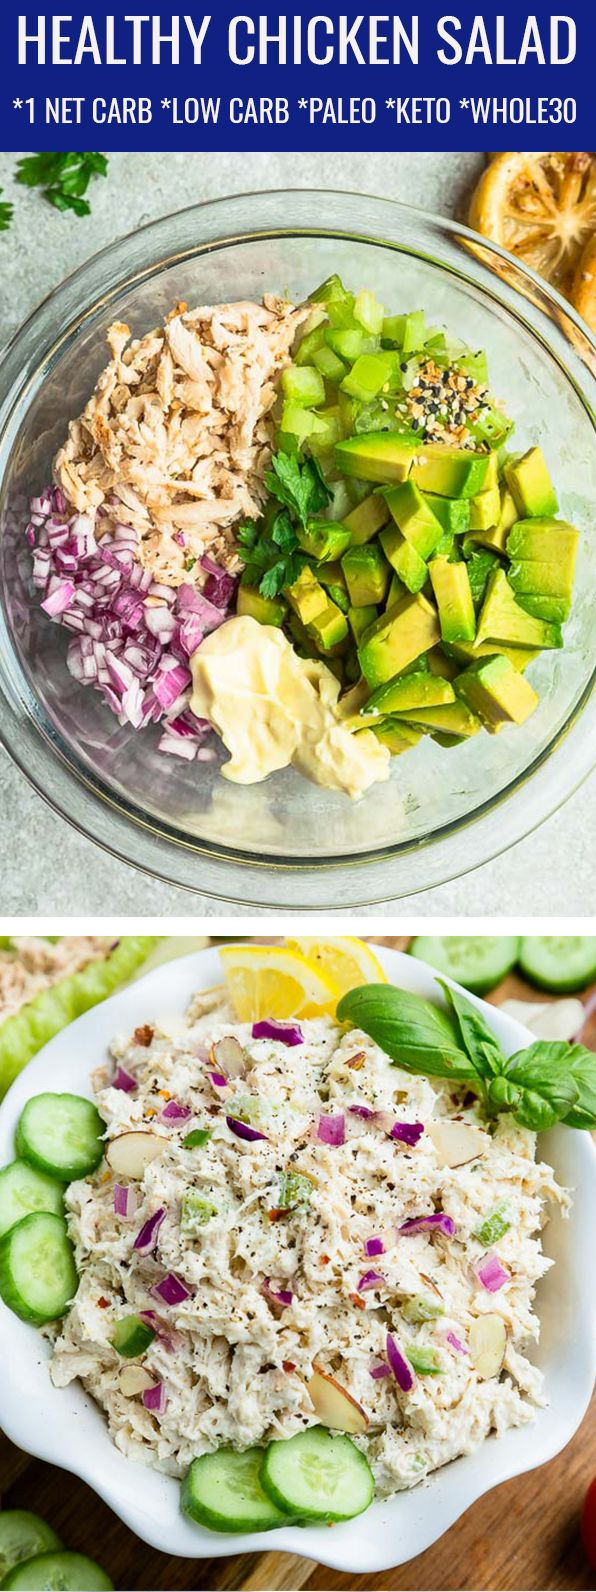 This Healthy Chicken Salad Is Very Easy To Make And The Perfect Lunch Light Dinner Or Healthy